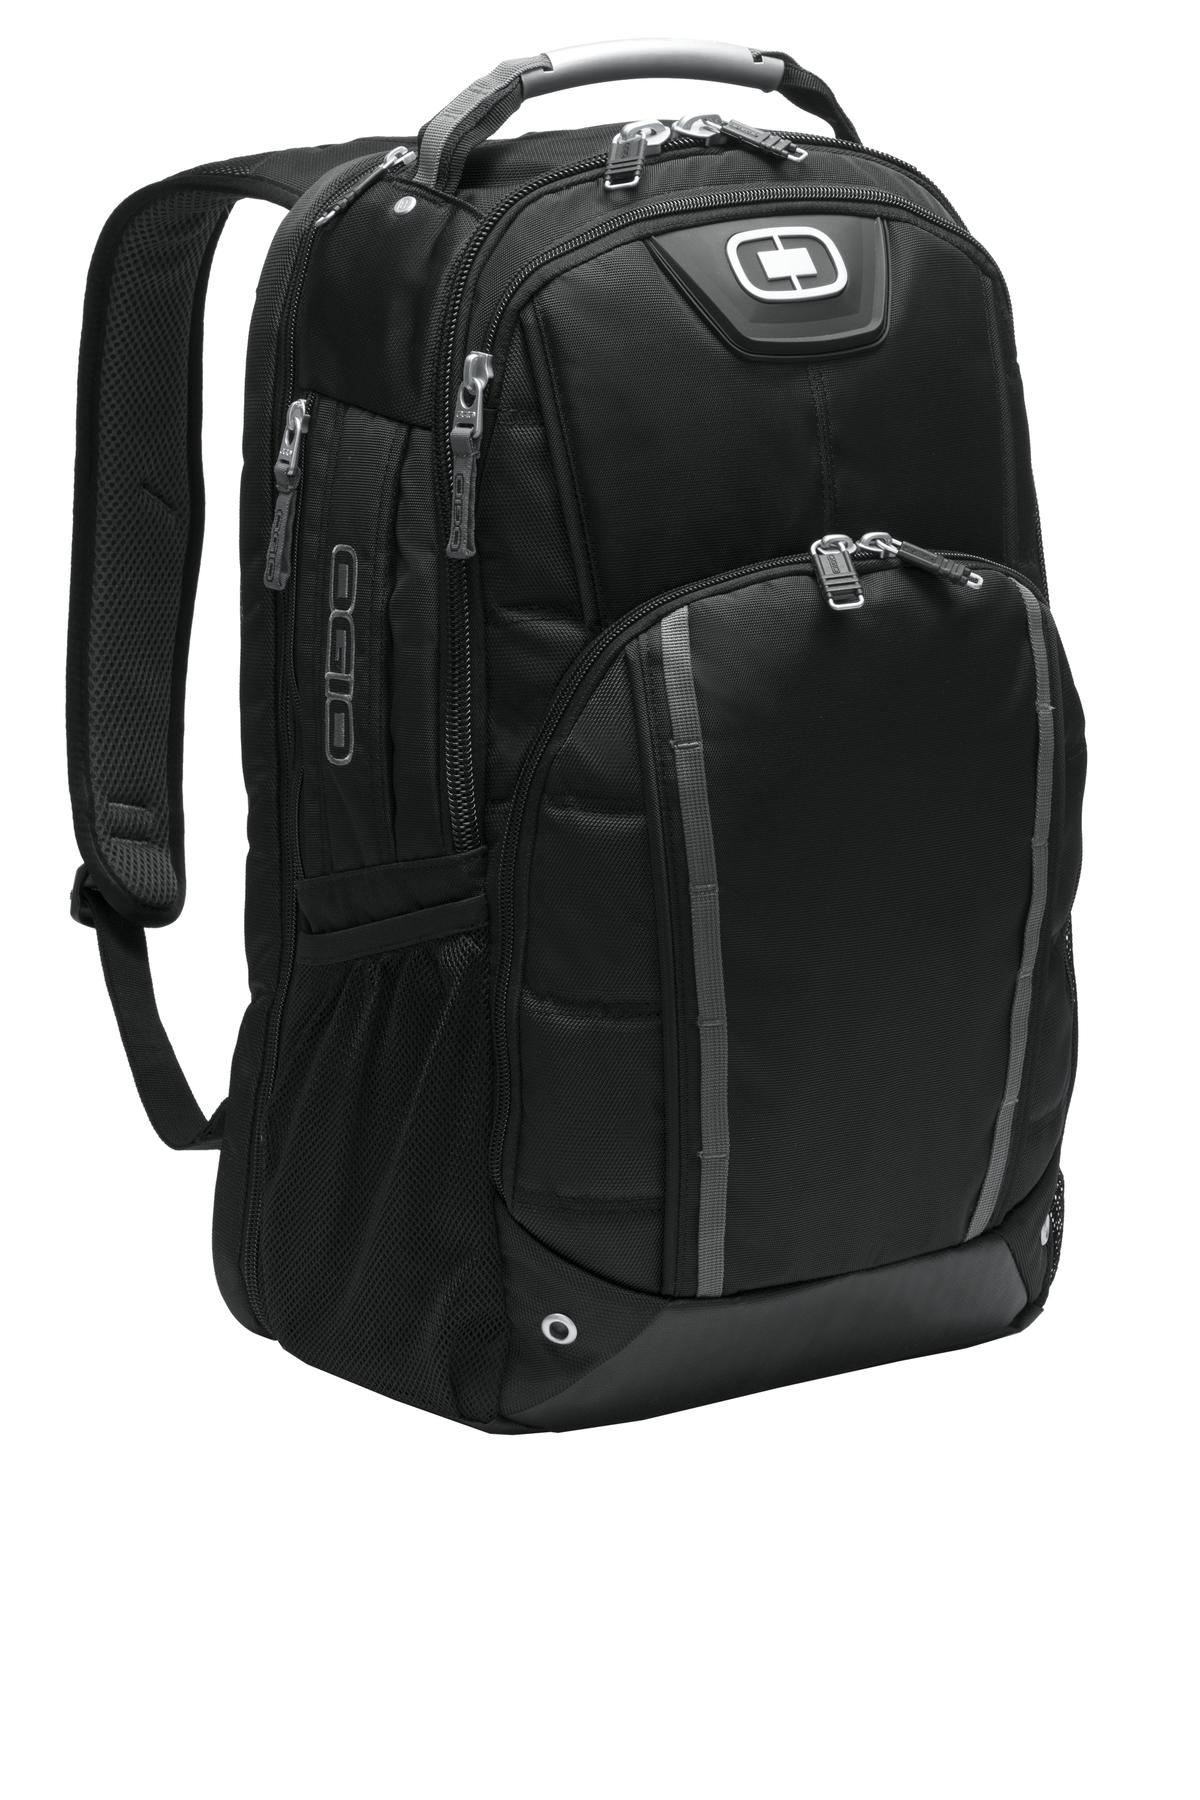 Ogio Backpack Cooler XdQ5Nt1n